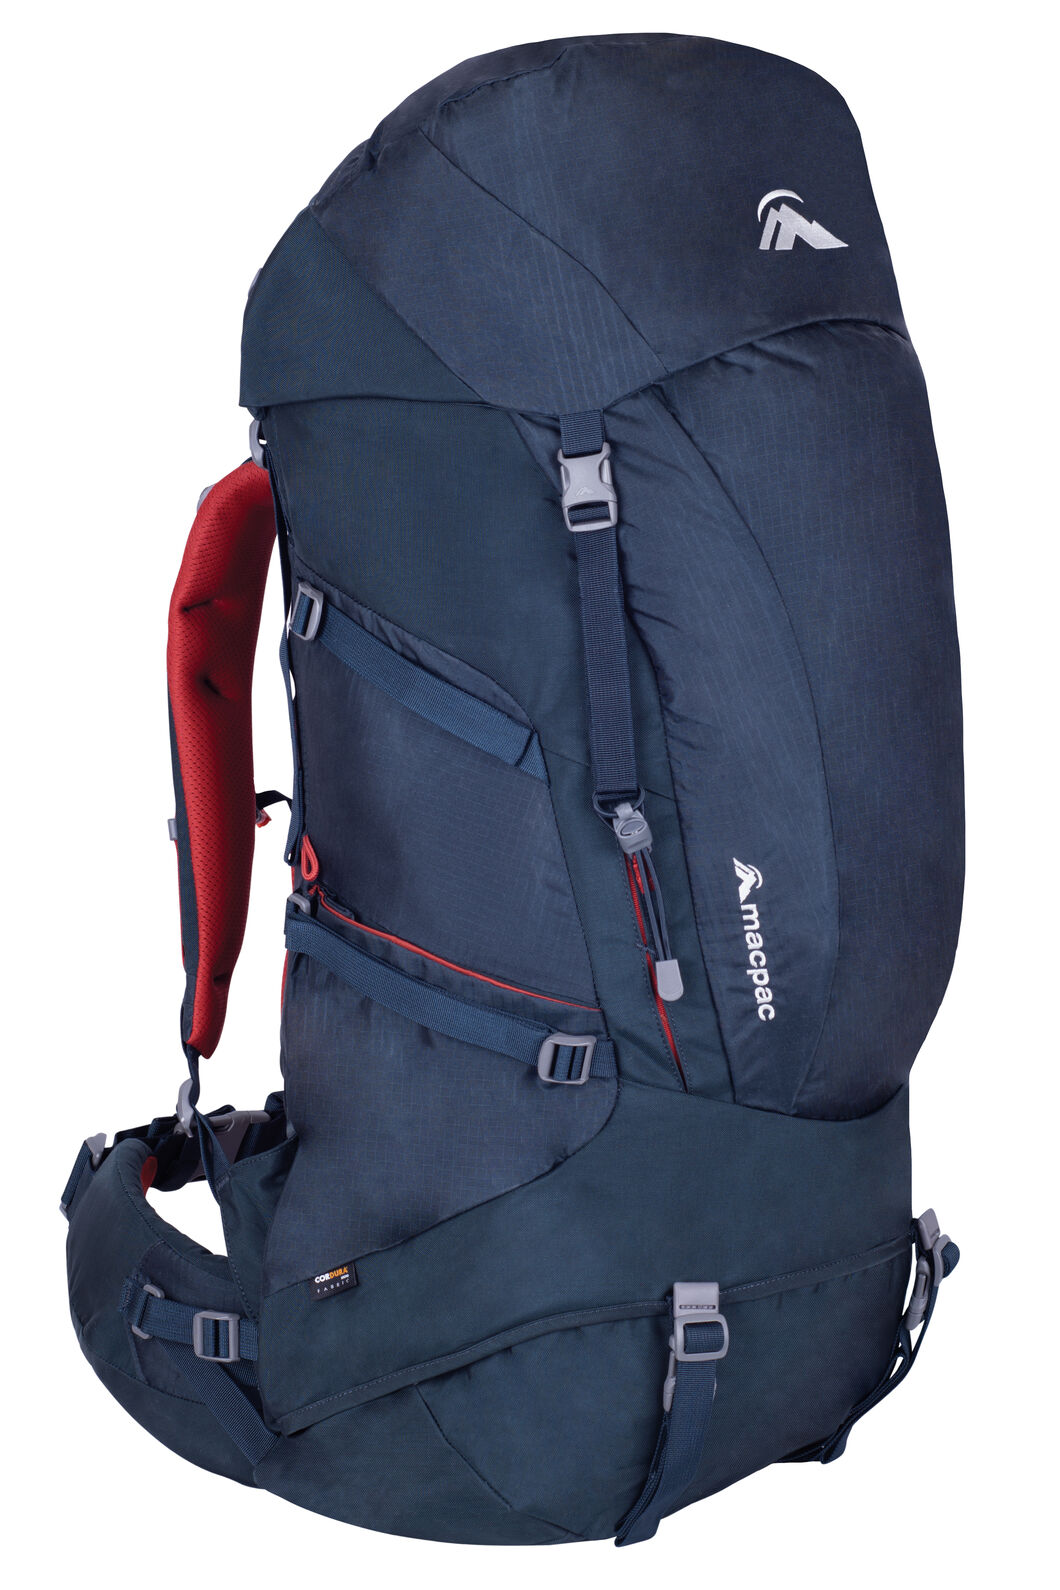 Macpac Torlesse 65L Hiking Pack, Carbon, hi-res